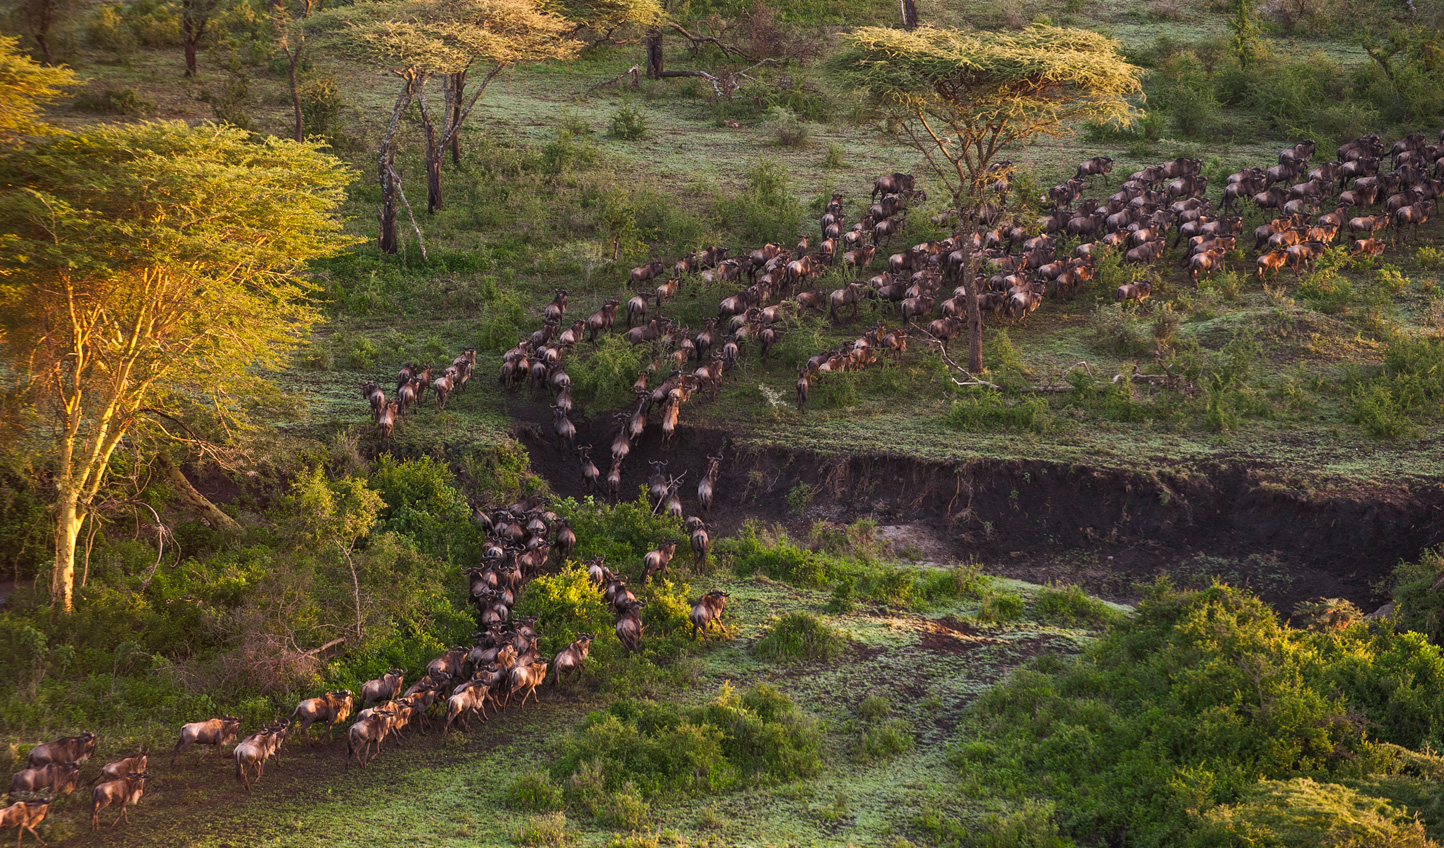 Visit between January and March to see the Great Migration passing through